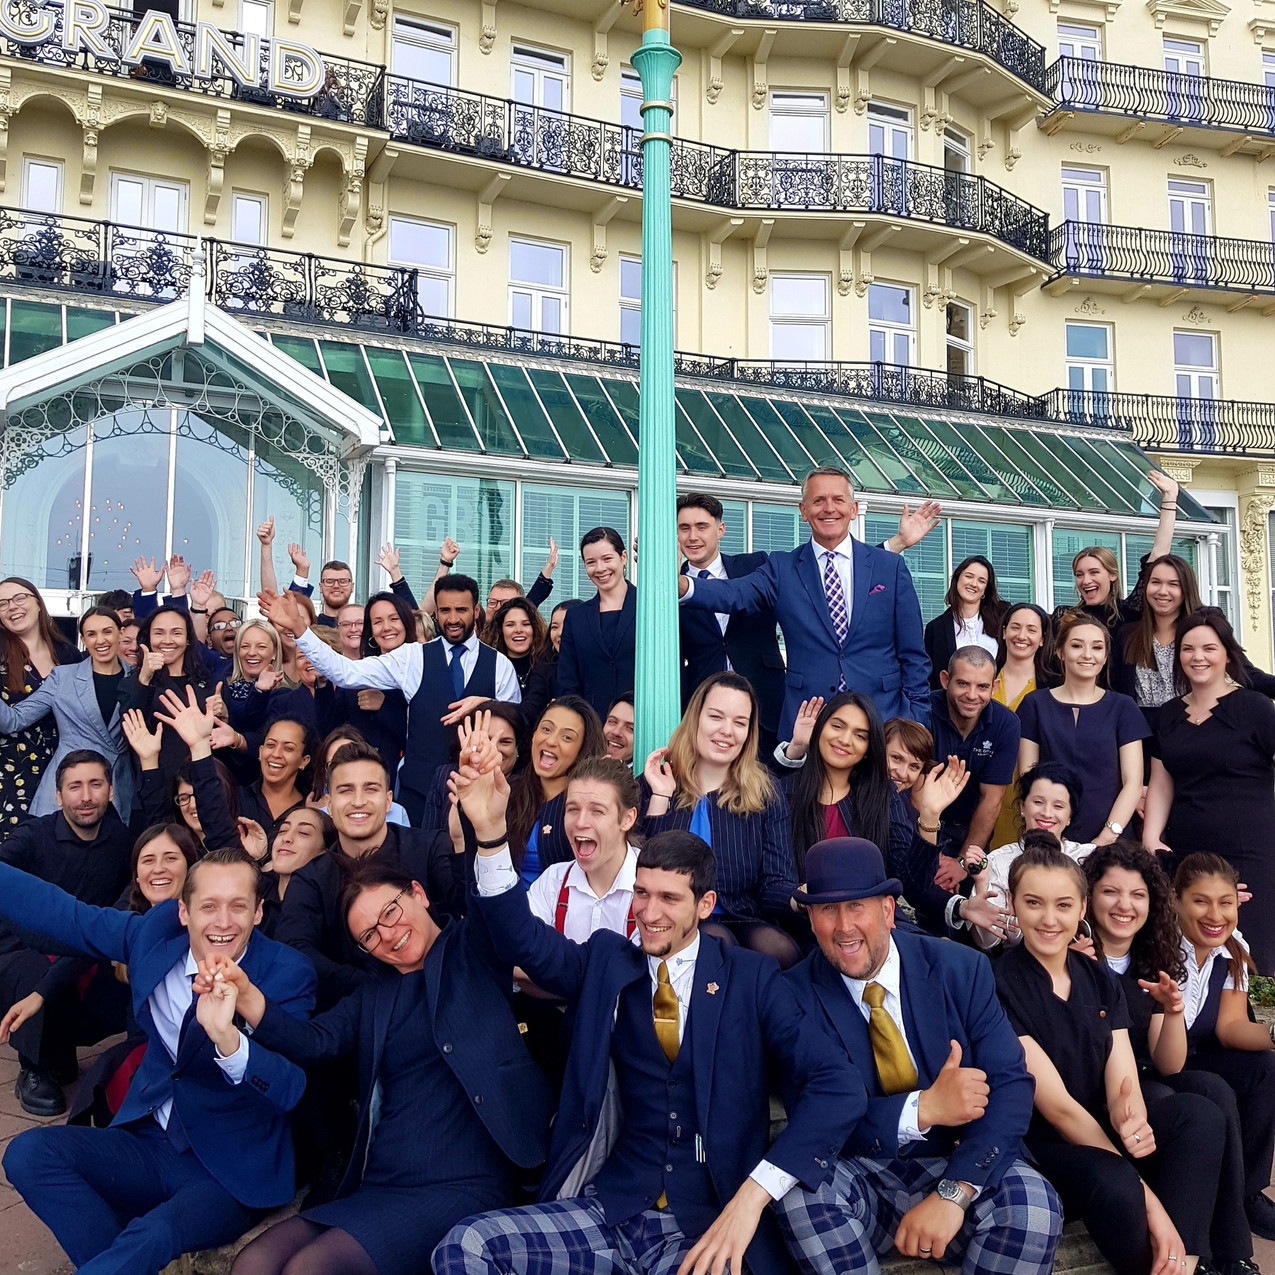 tmp_The Grand Brighton Team289995030 cop